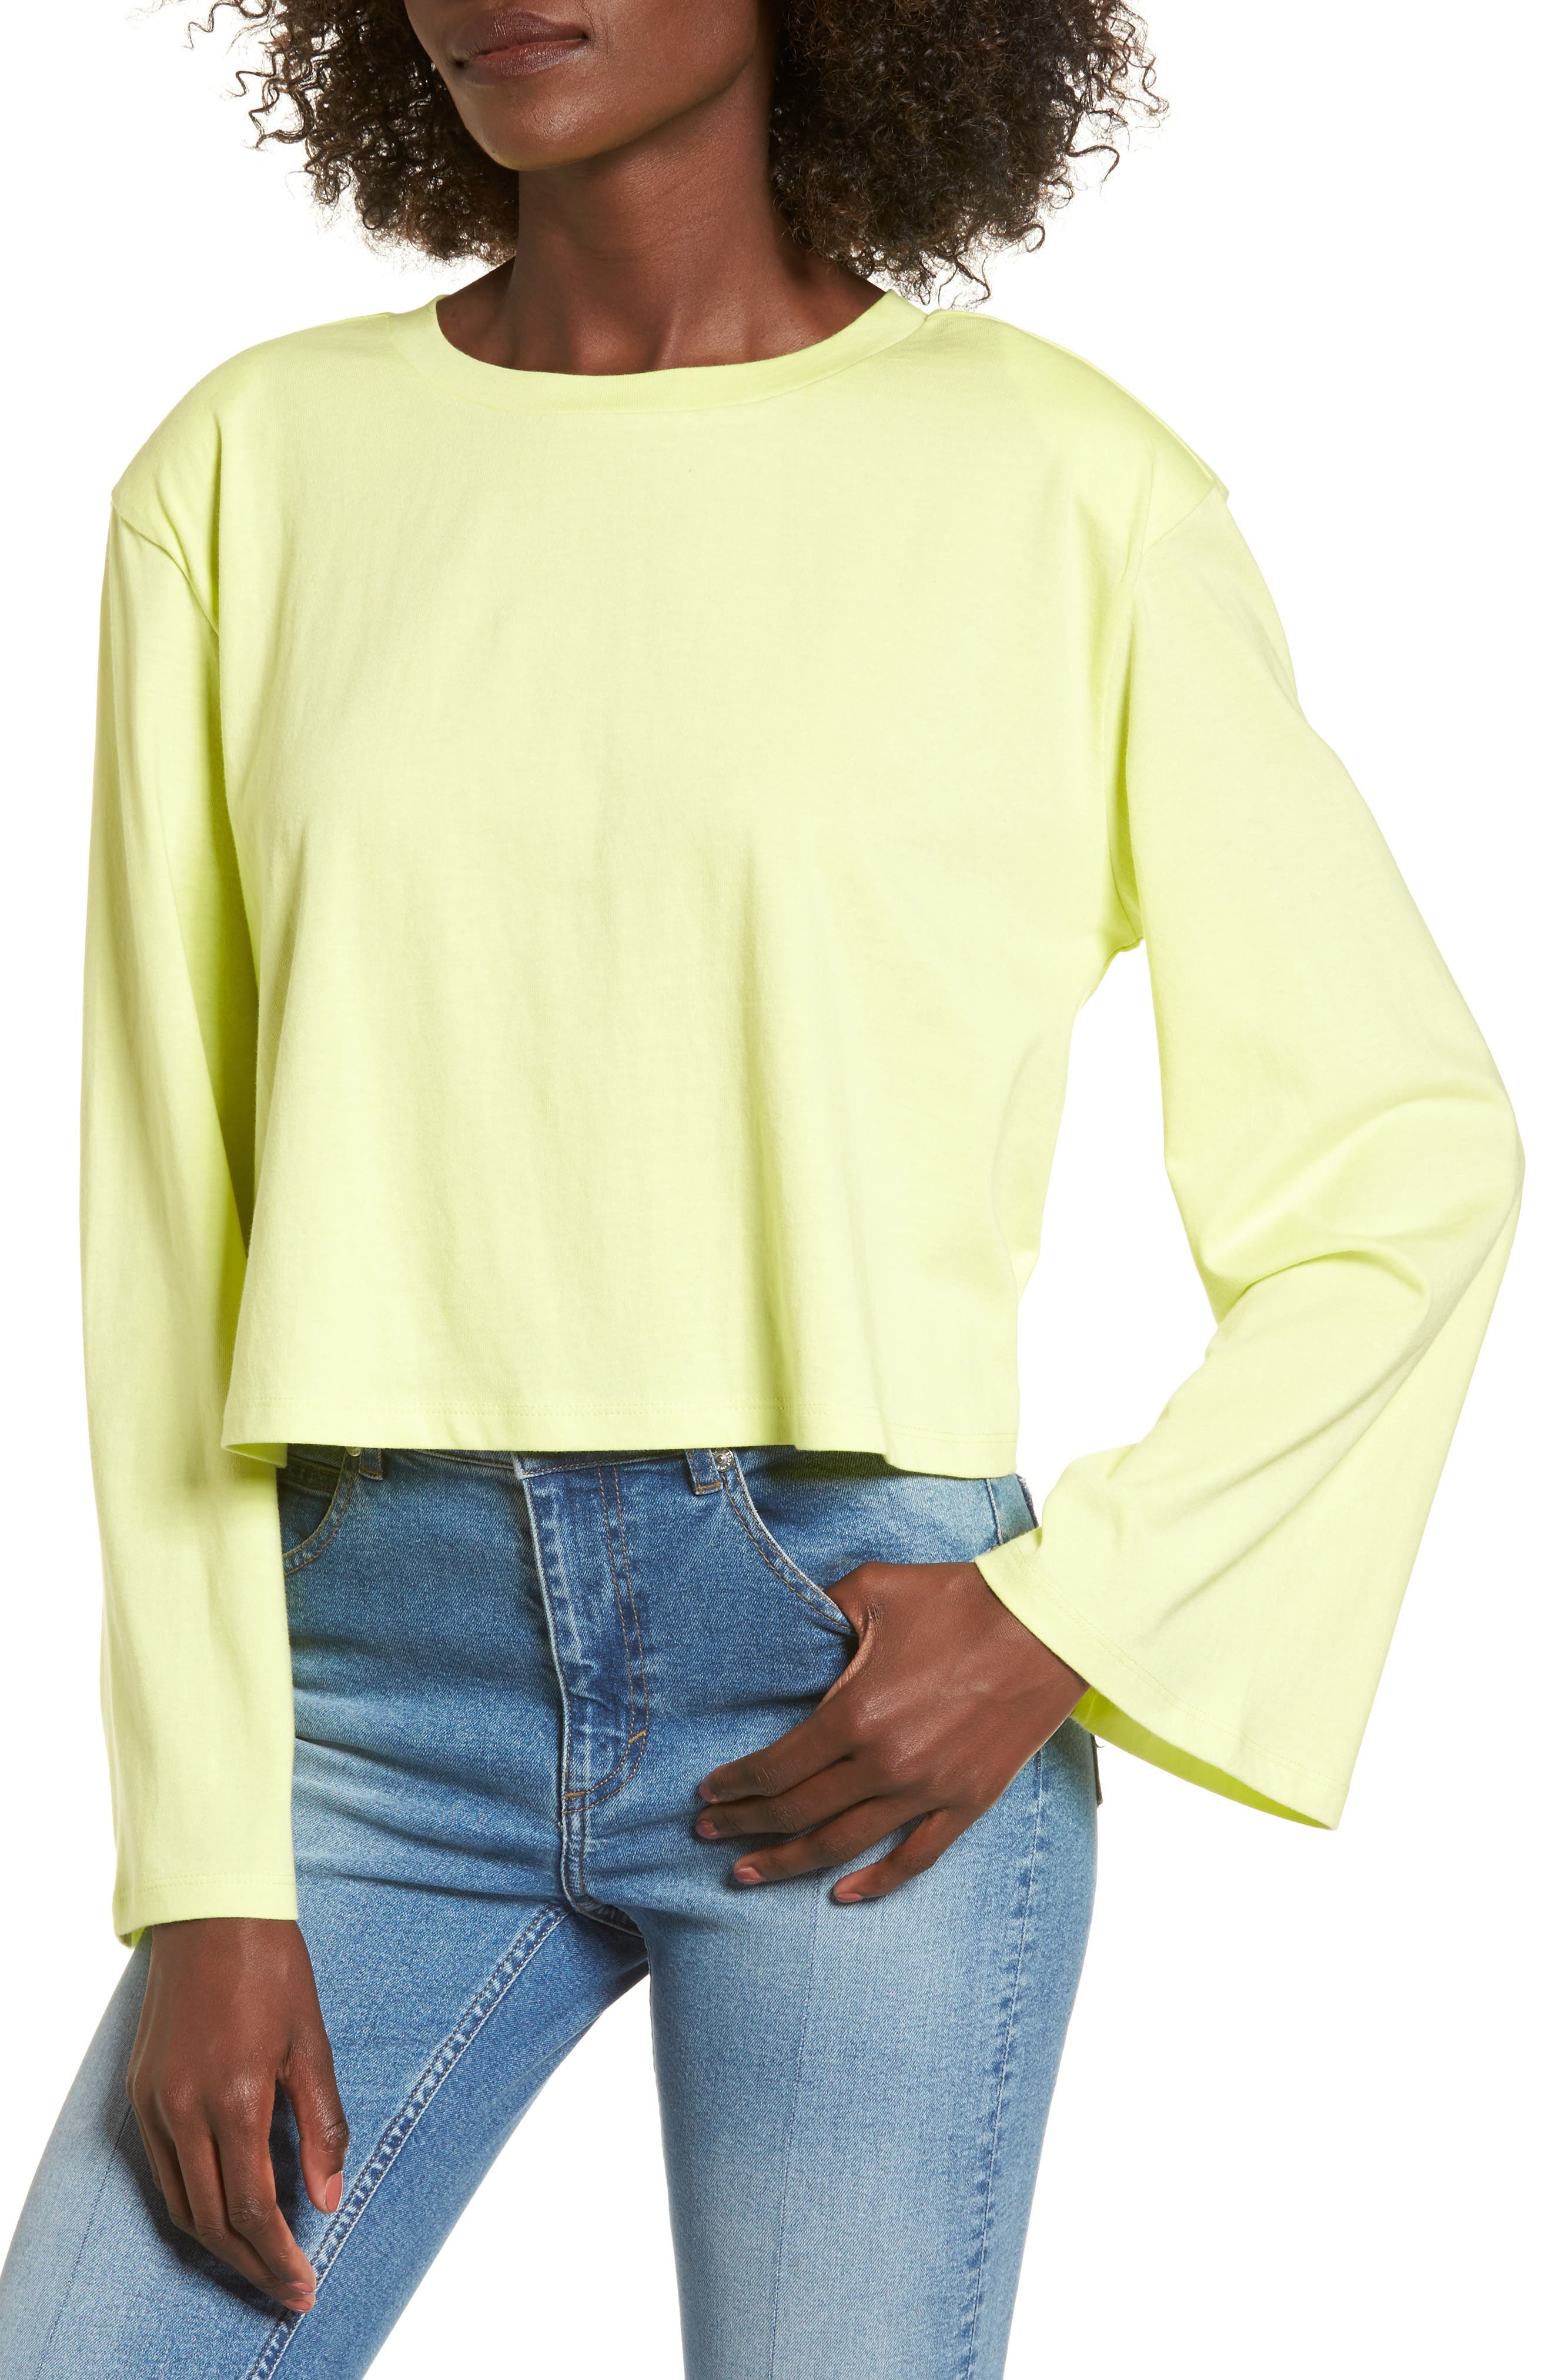 Shoulder Pad Tee,                         Main,                         color, Green Obi